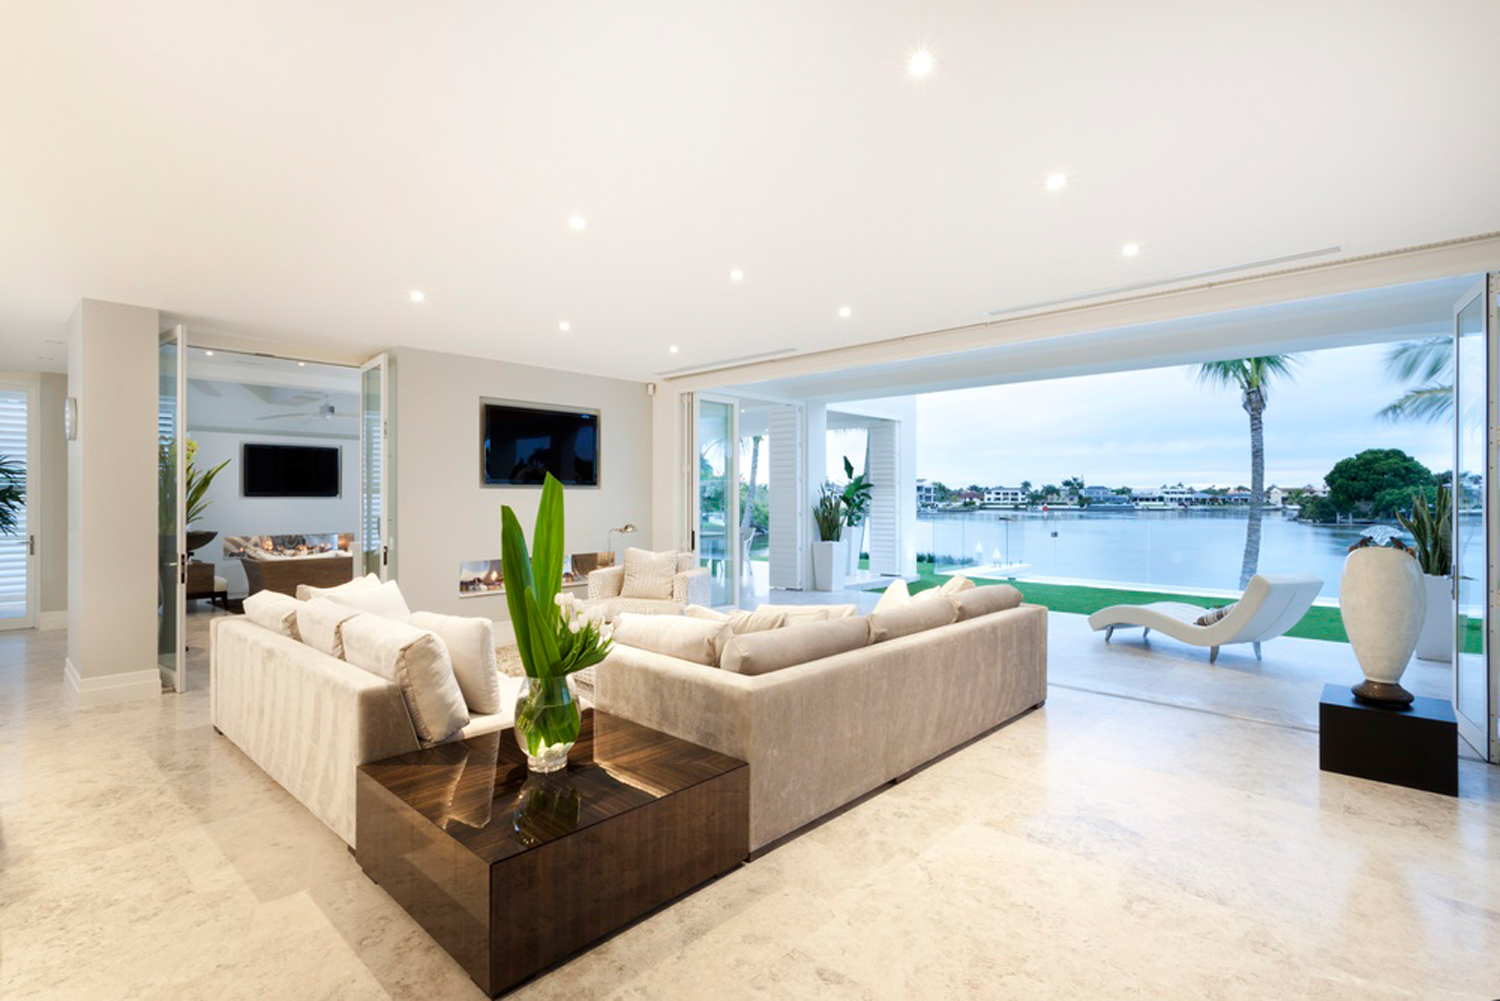 Beautiful living room with open doors to a yard viewing a big lake